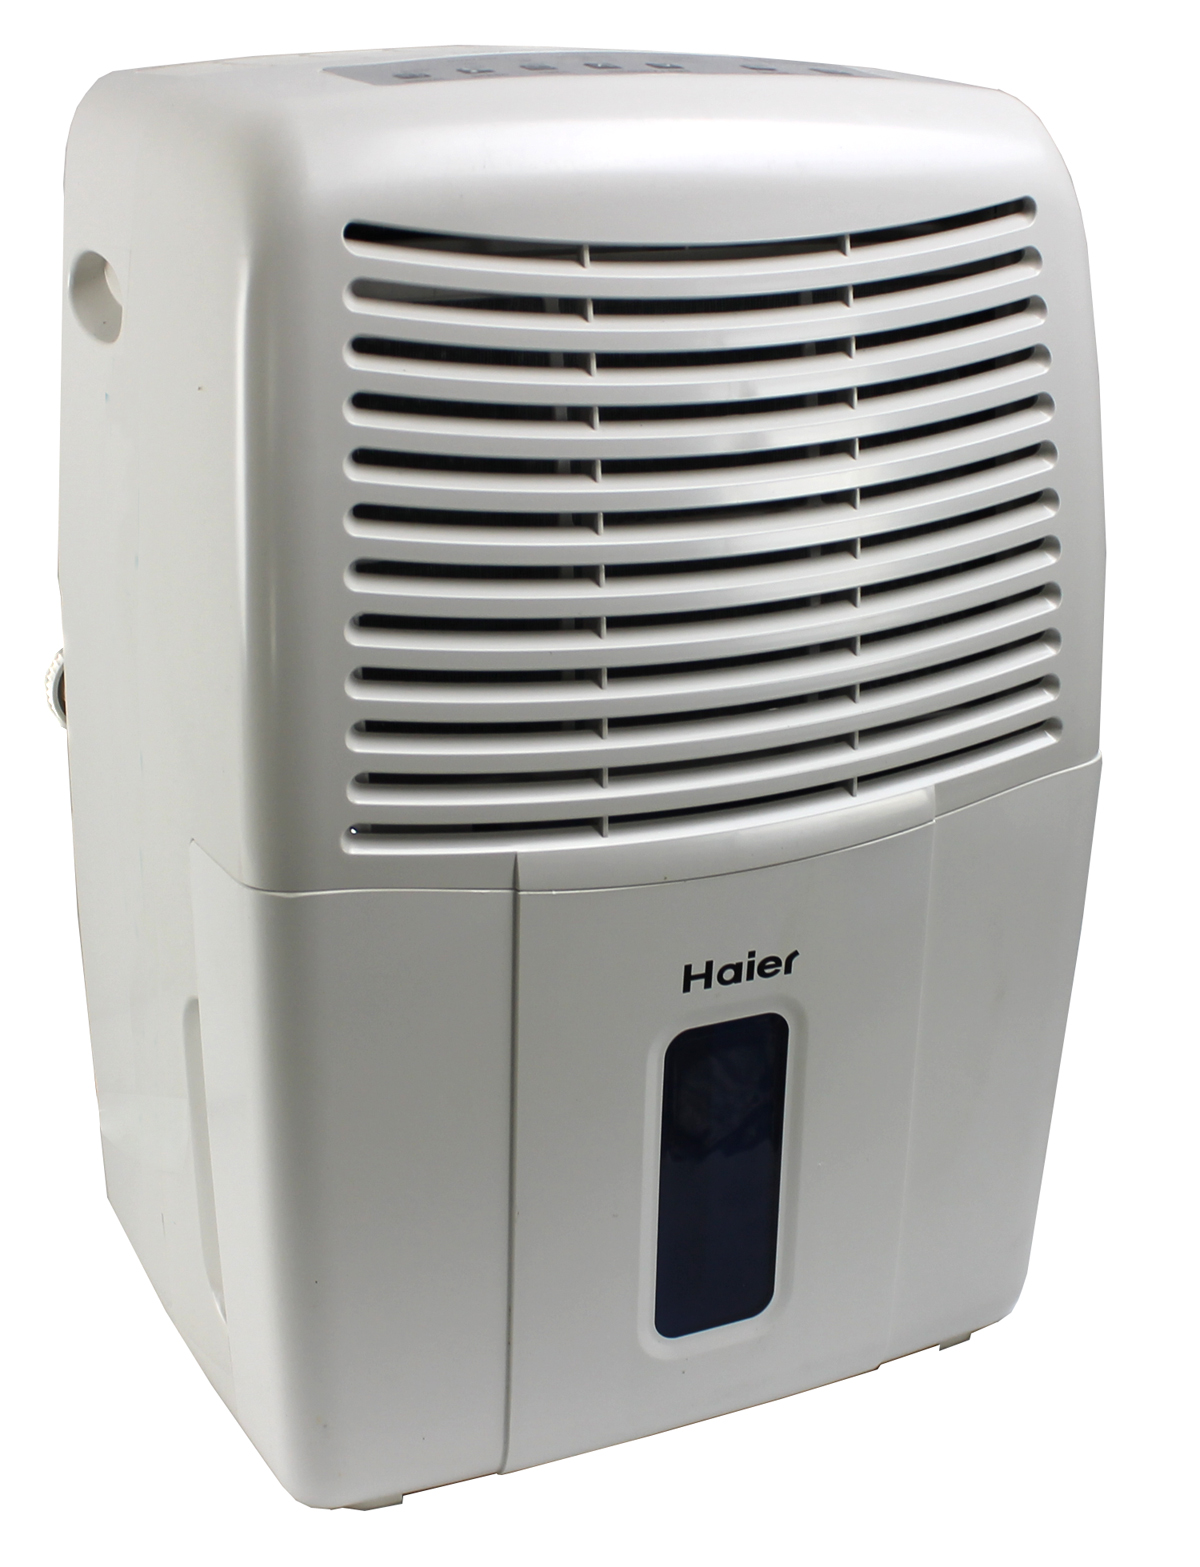 Haier DE45EK 45 Pint Portable Dehumidifier